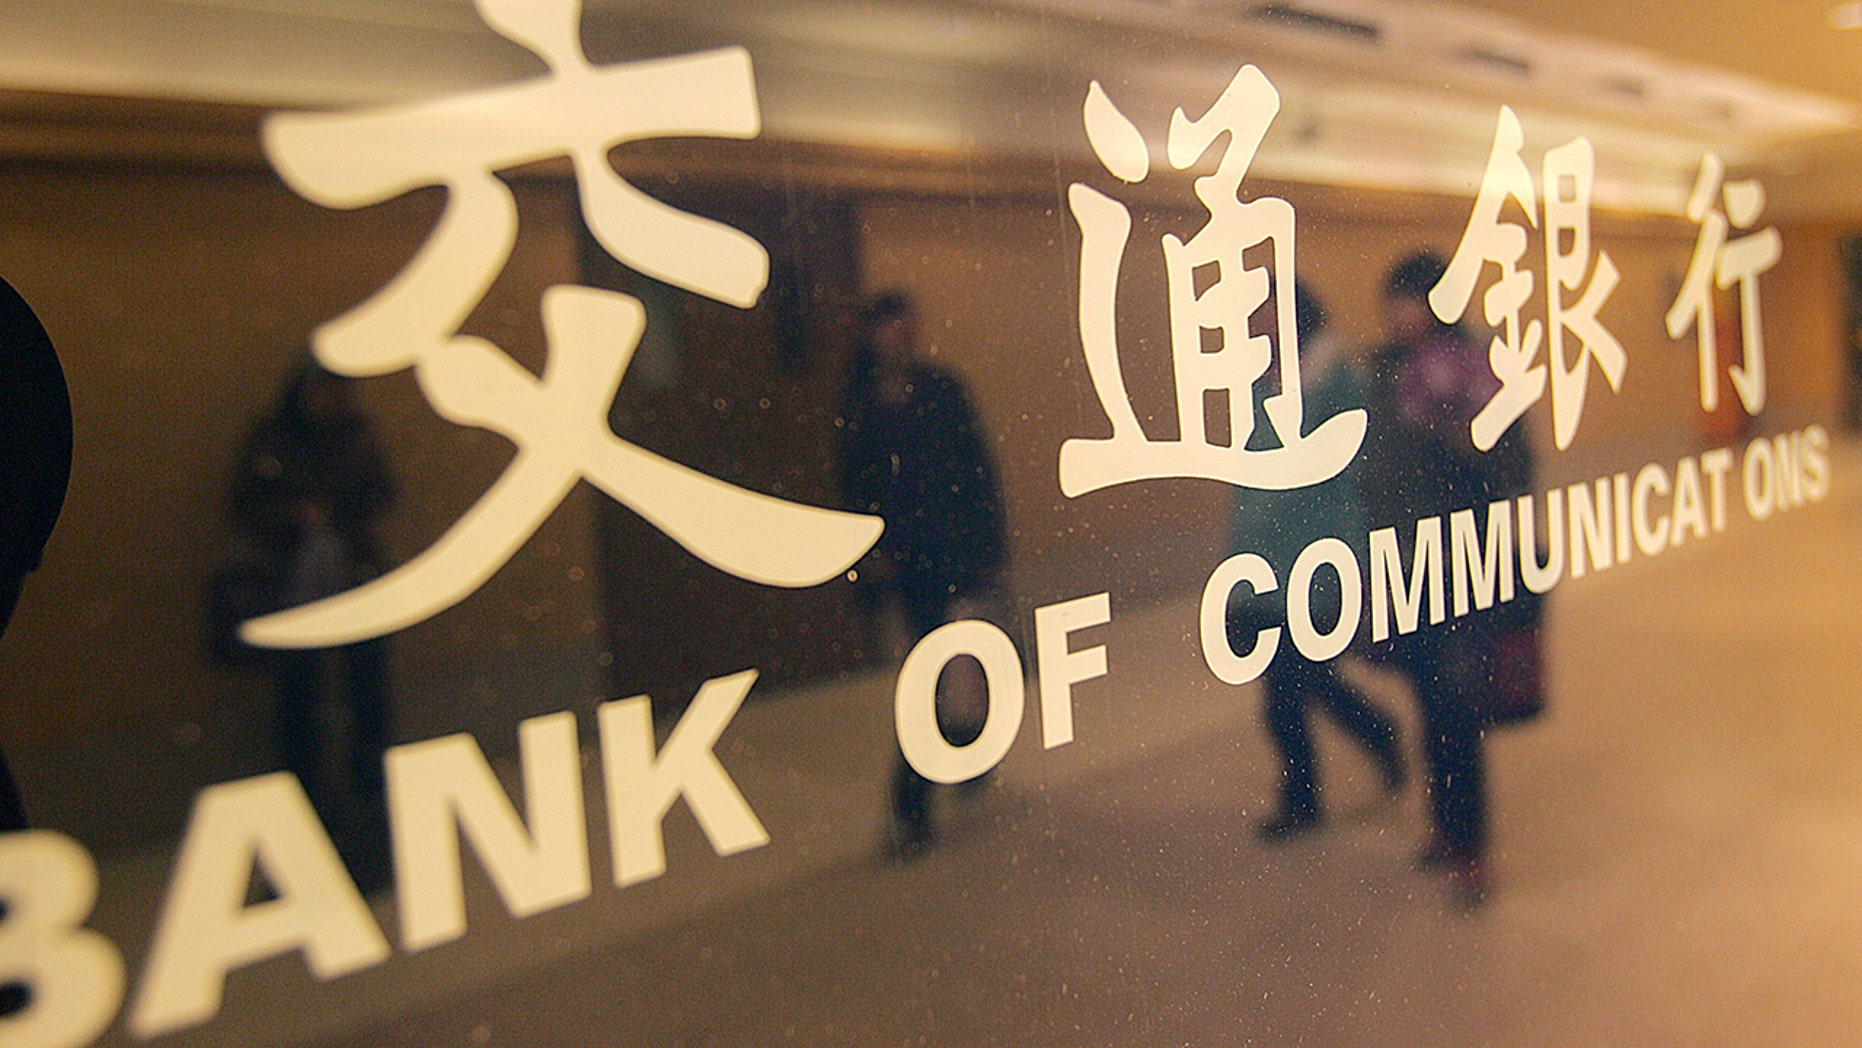 The family of a former executive of China's state-owned Bank of Communications has been barred from leaving the country while he is on the run for a $1.4 billion fraud scheme. (REUTERS)